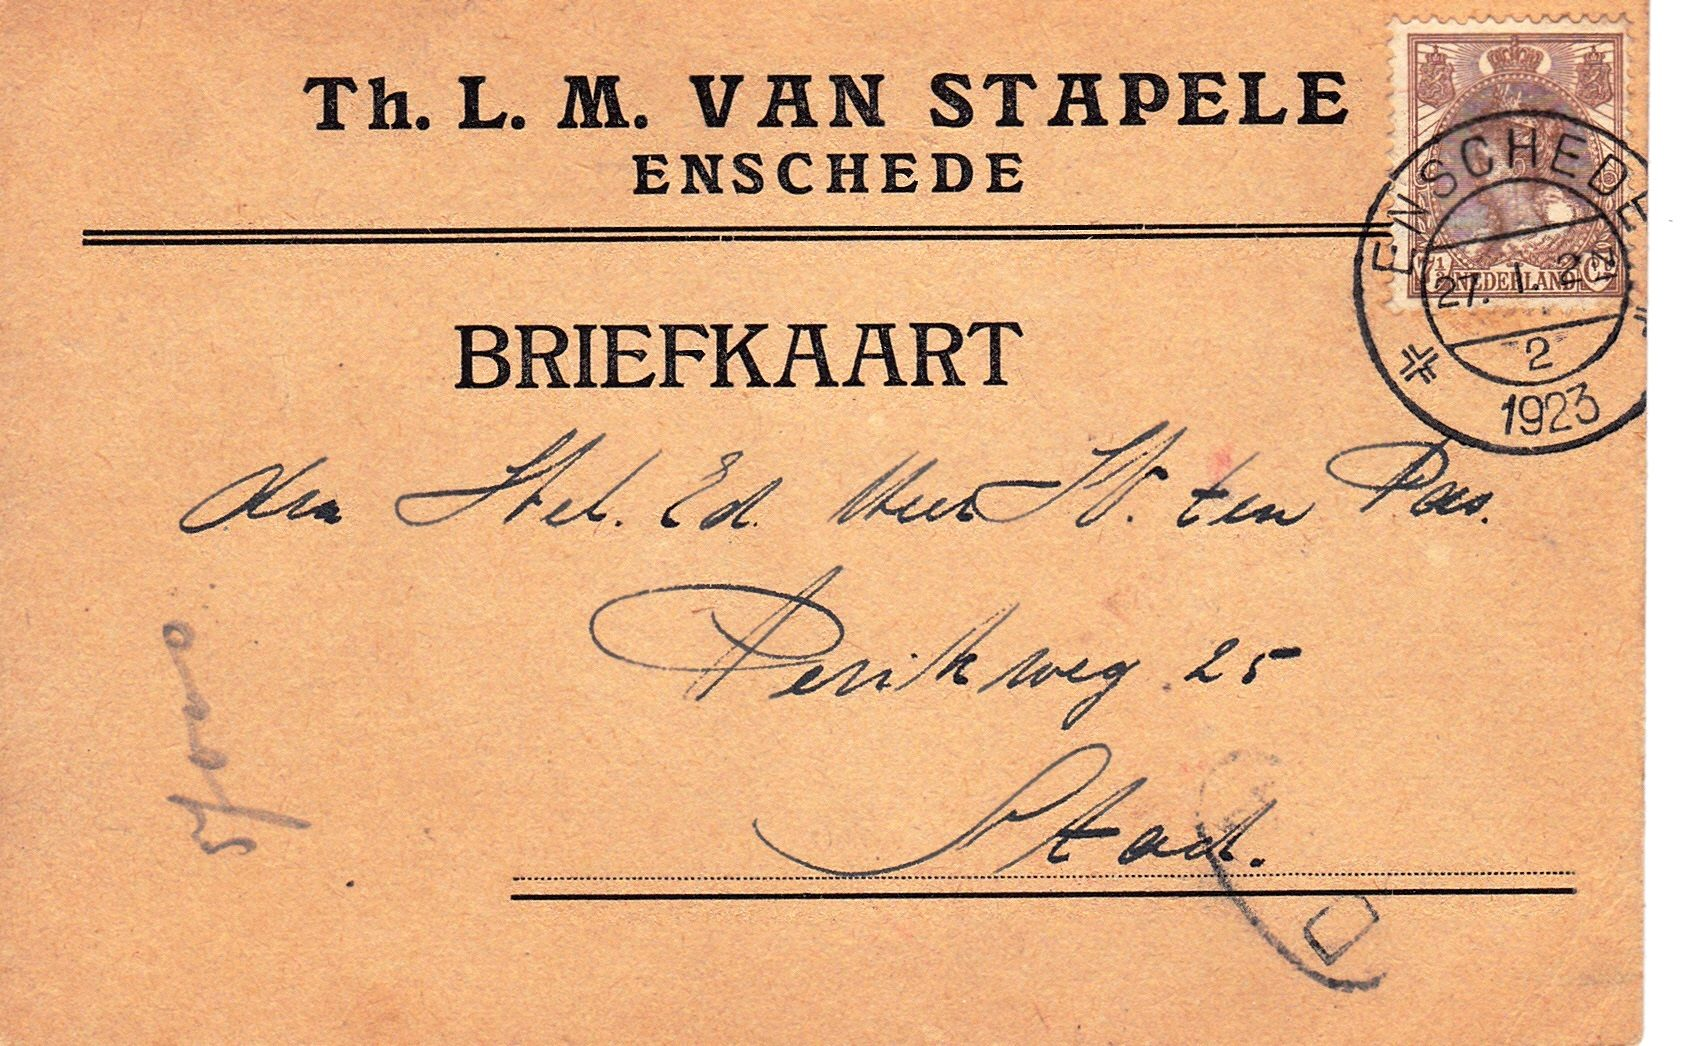 Haverstraat 26 Th.L.M. van Stapele briefkaart.jpg